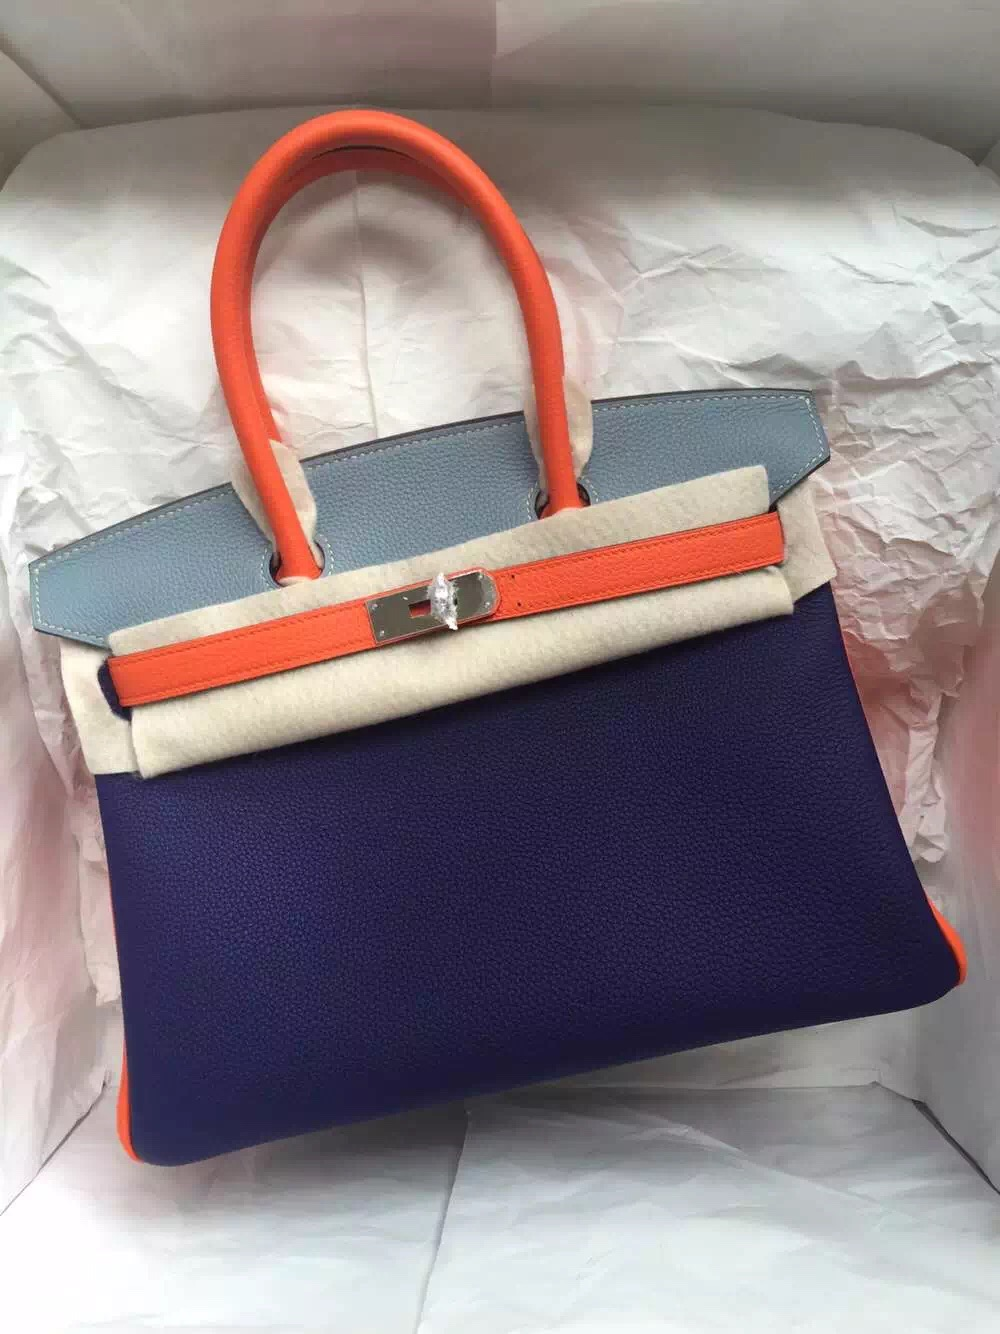 9K Iris Purple/J7 Blue Lin/Orange Togo Leather Hermes Birkin Bag 30cm